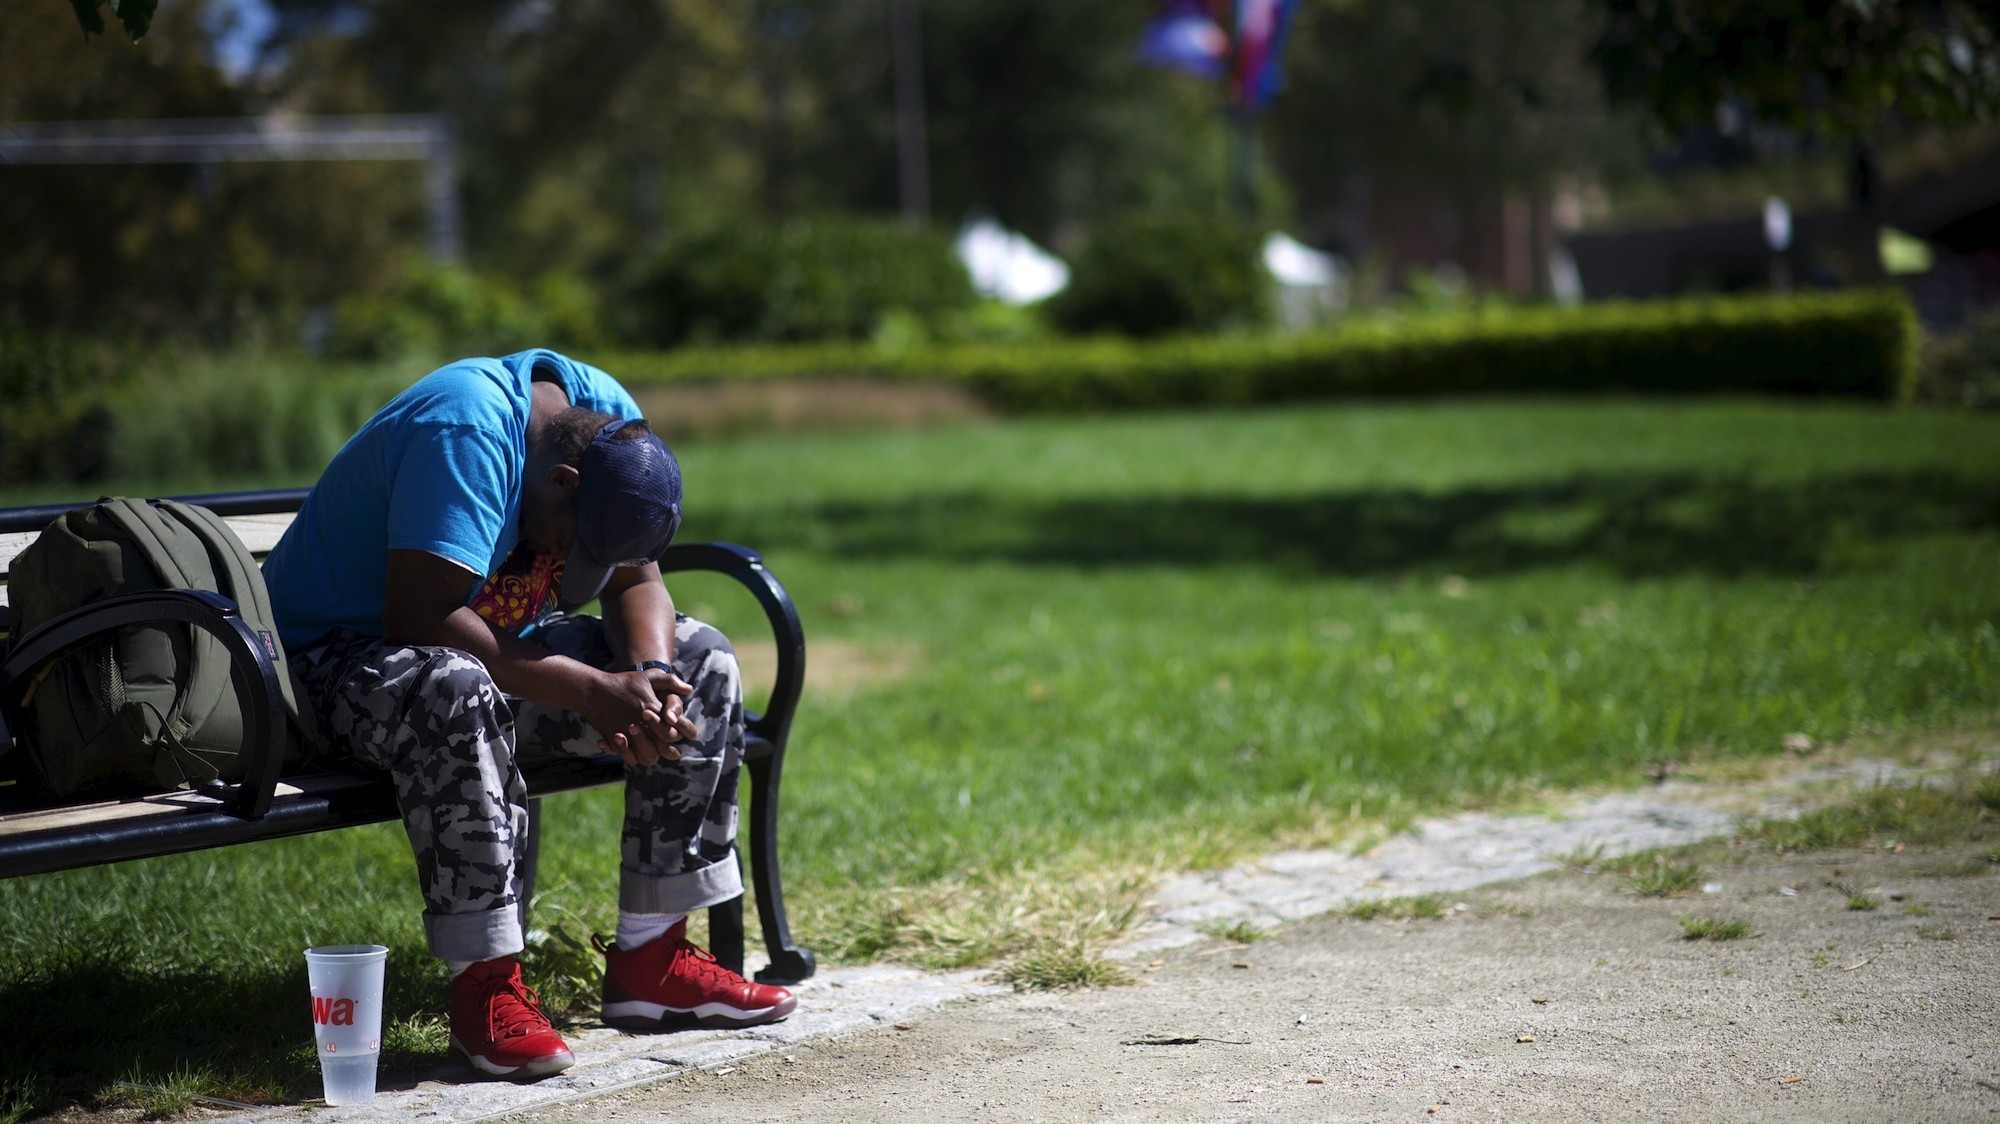 A 'Habitual Drunkard' Law Is Keeping Homeless Alcoholics on the Streets in Virginia